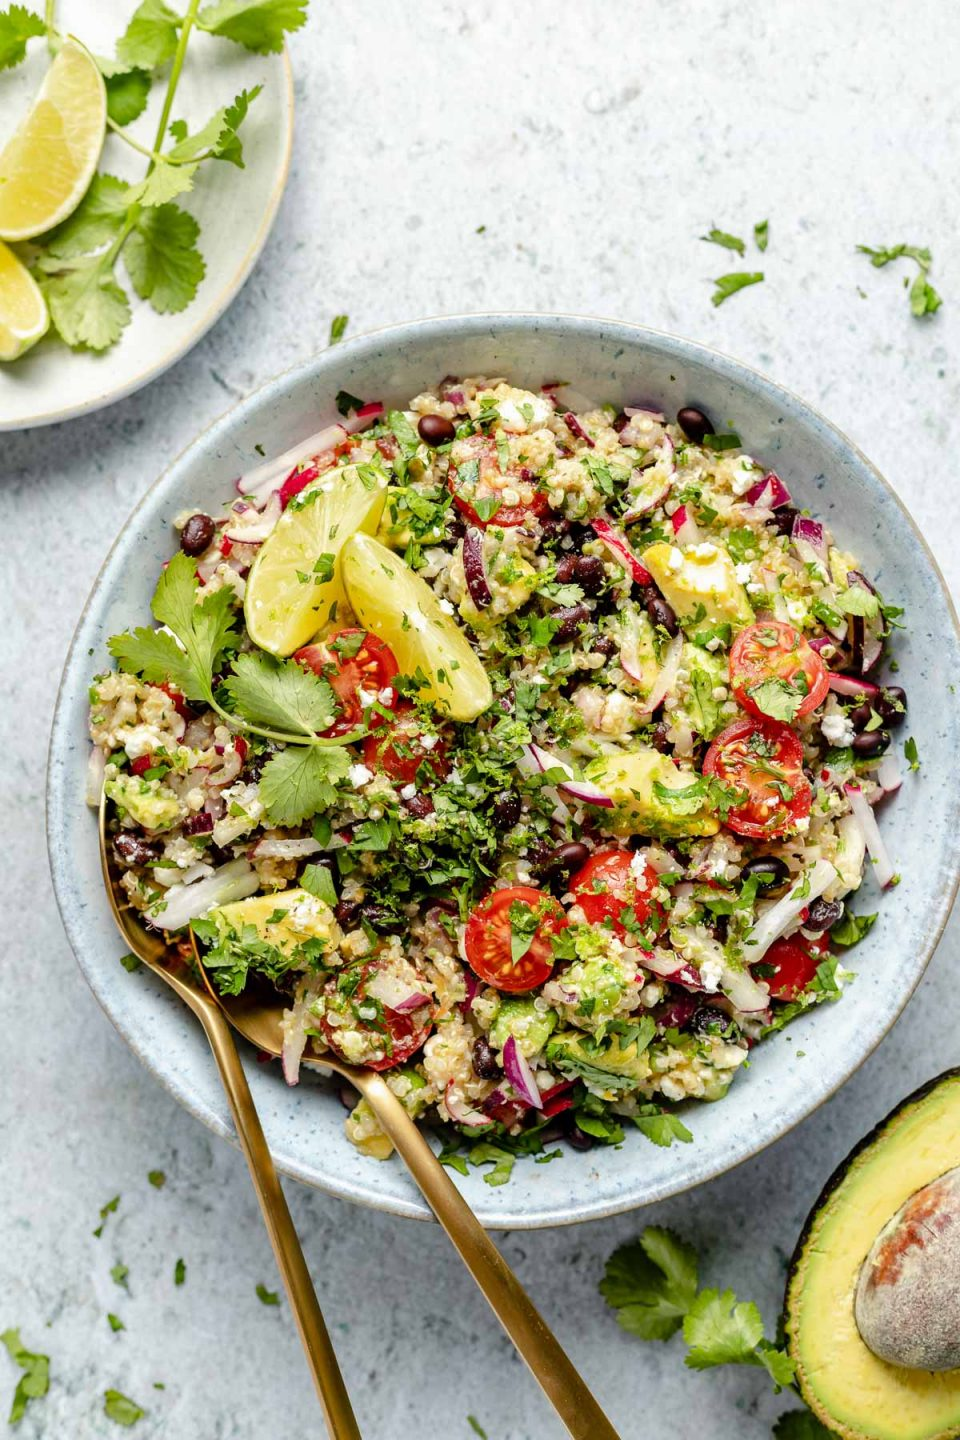 Southwest quinoa salad shown in light blue serving bowl, topped with fresh cilantro & lime wedges. Gold flatware is nestled into the quinoa salad for serving. The bowl sits atop a light blue surface, surrounded by chopped cilantro, lime wedges, & halved avocado.